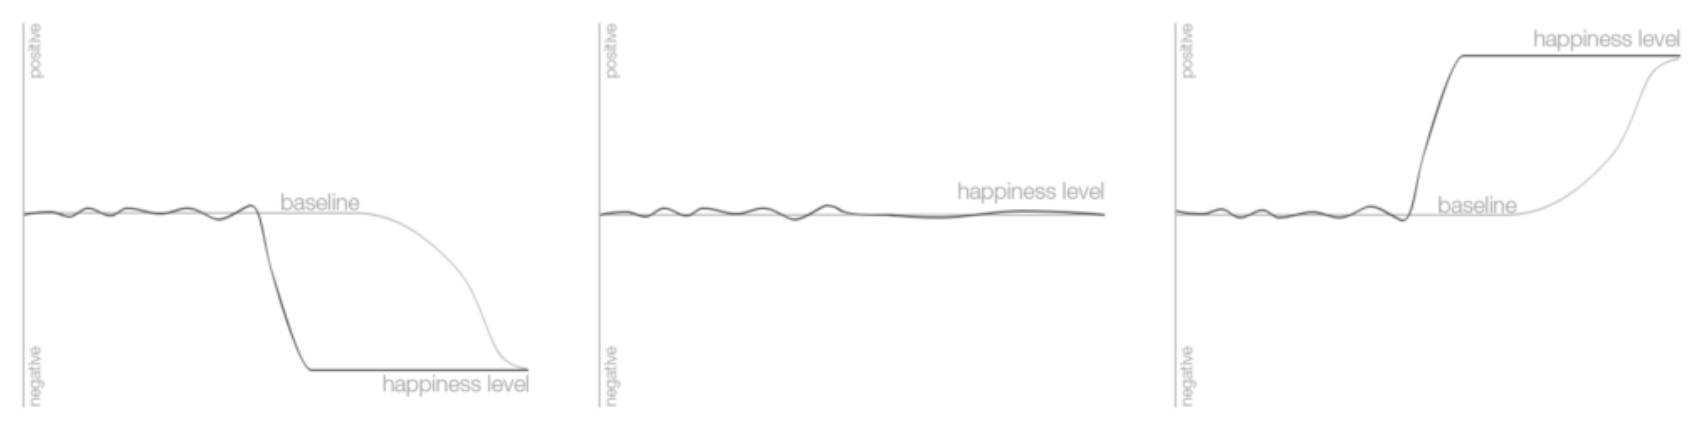 The happiness level for a six month period.